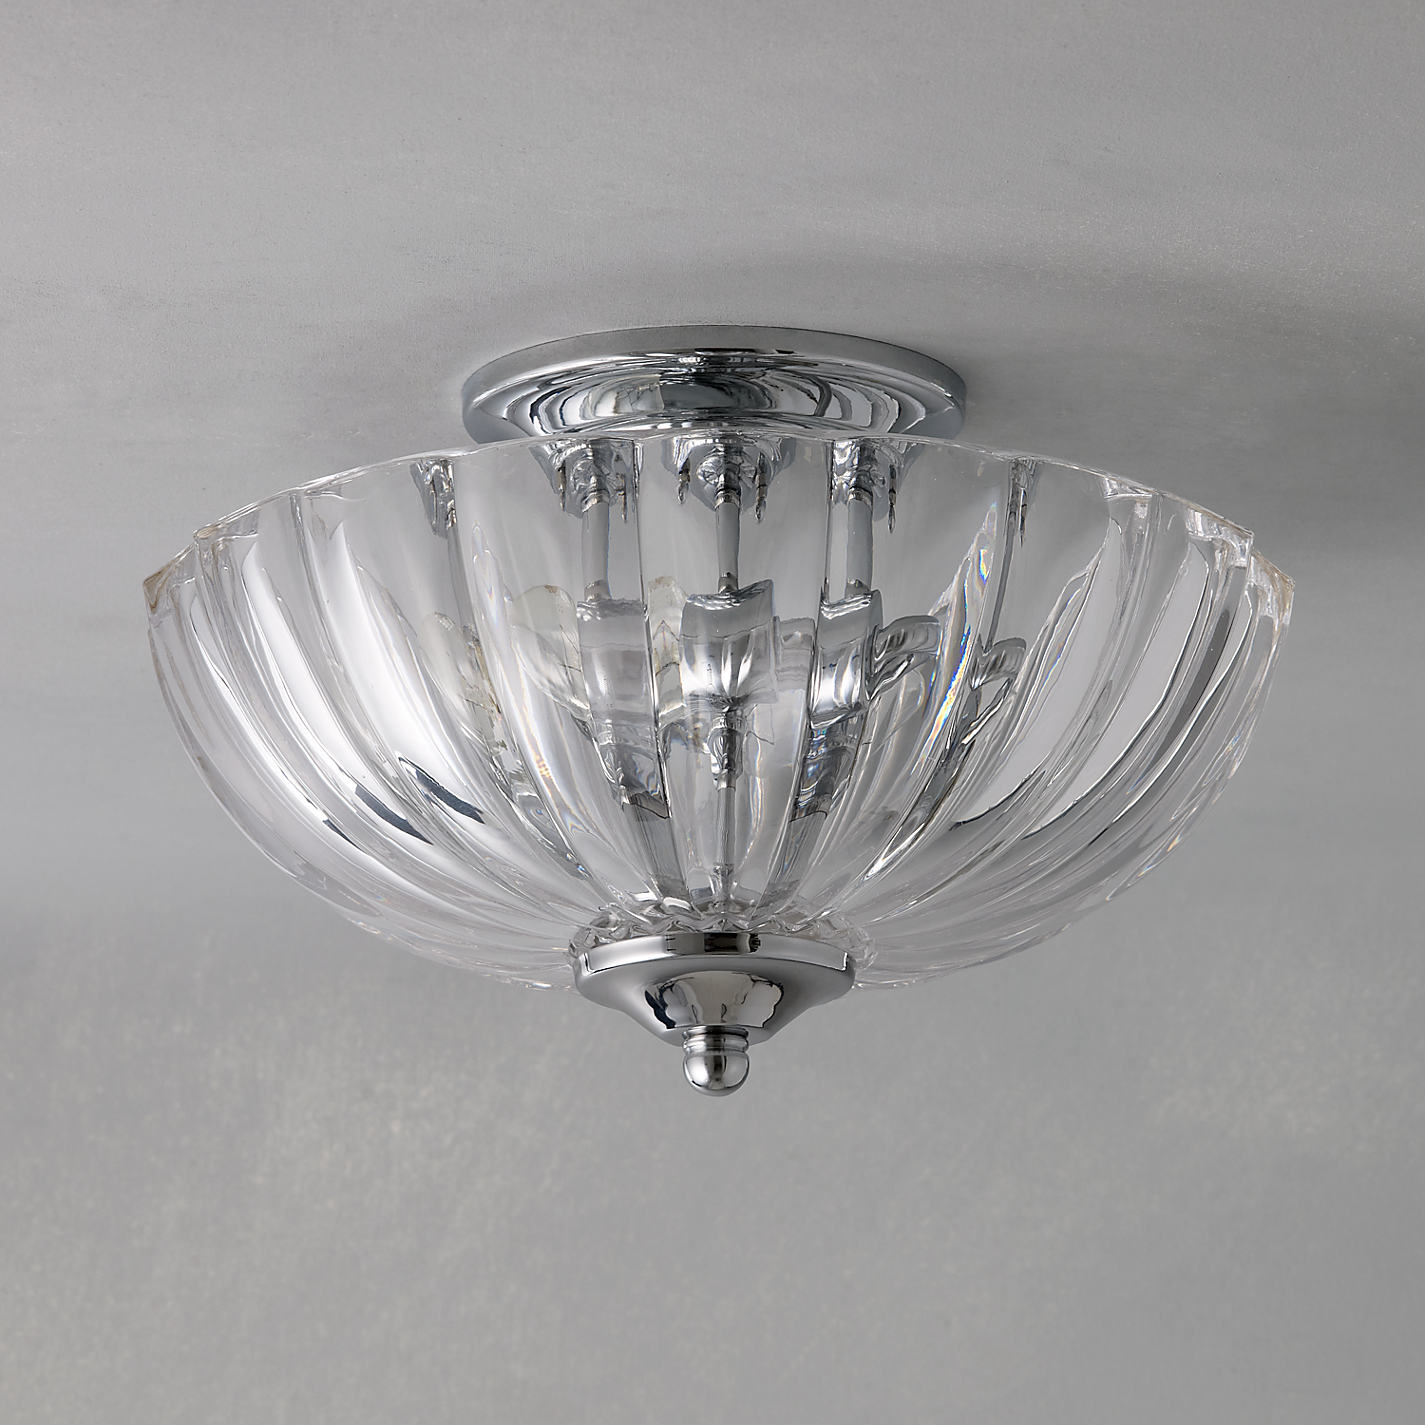 Alium Ceiling Light John Lewis : John lighting ideas